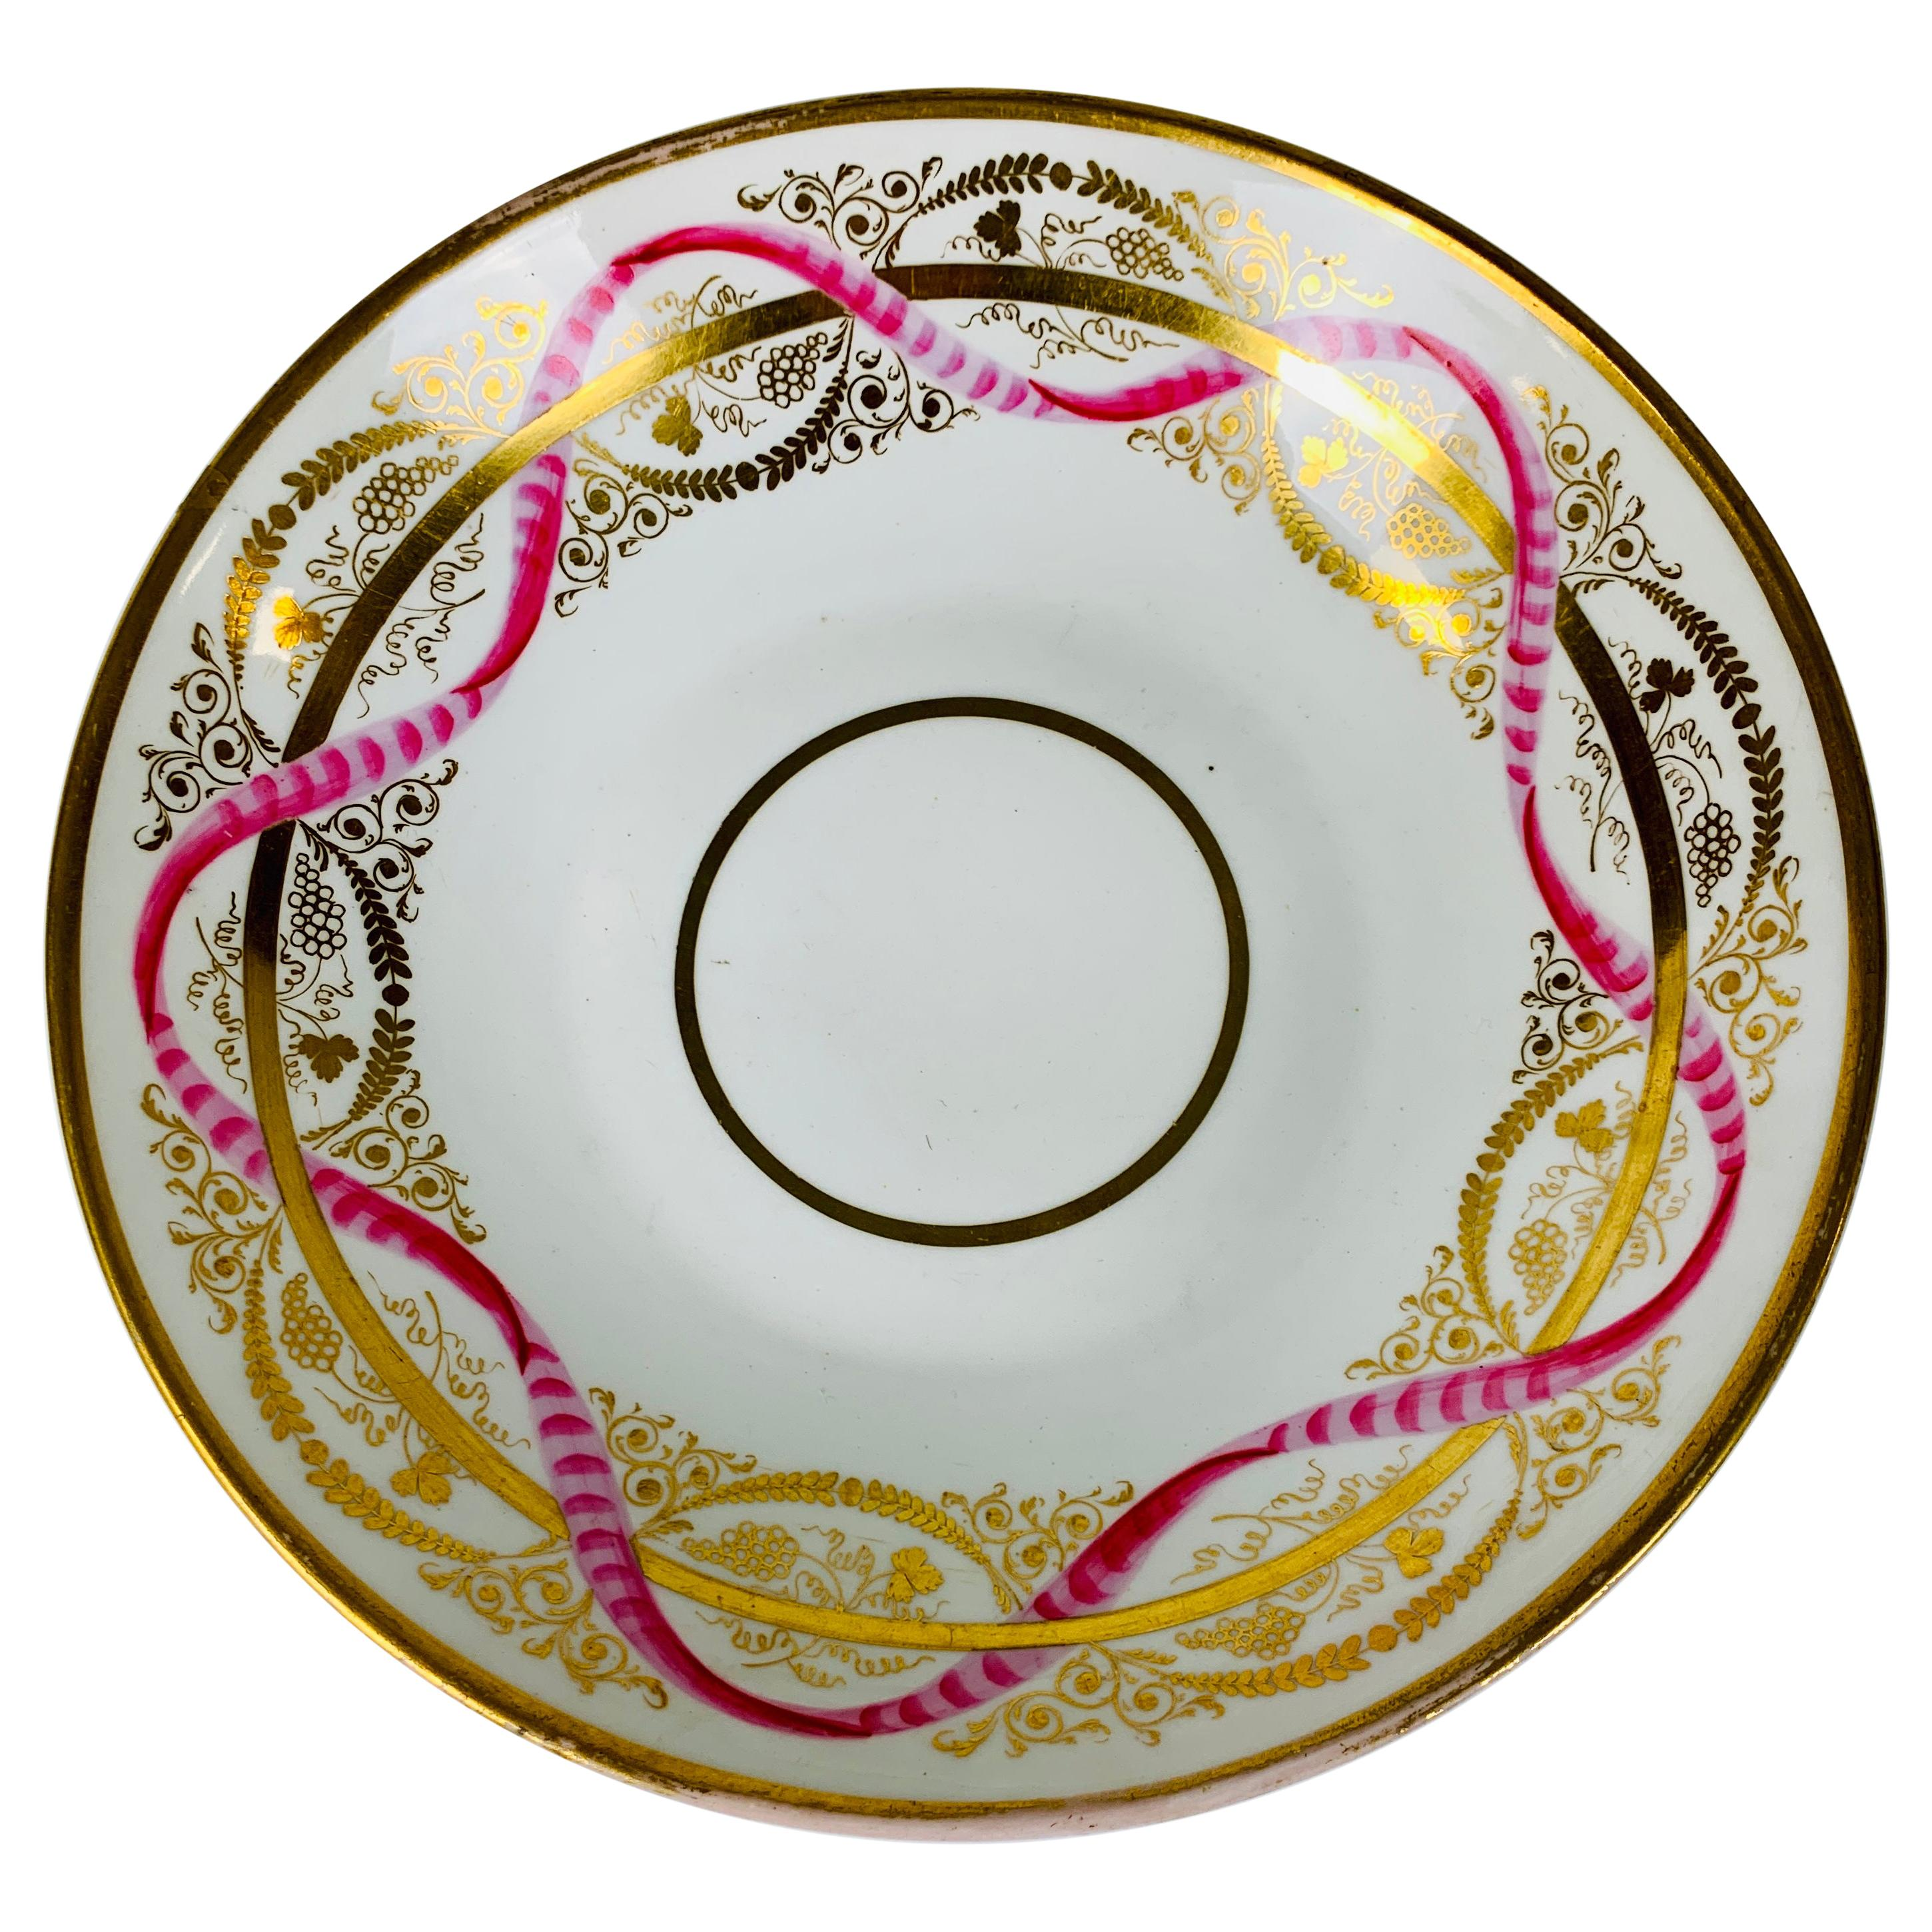 From the Collection of Mario Buatta a Davenport Porcelain Dish, England c-1820